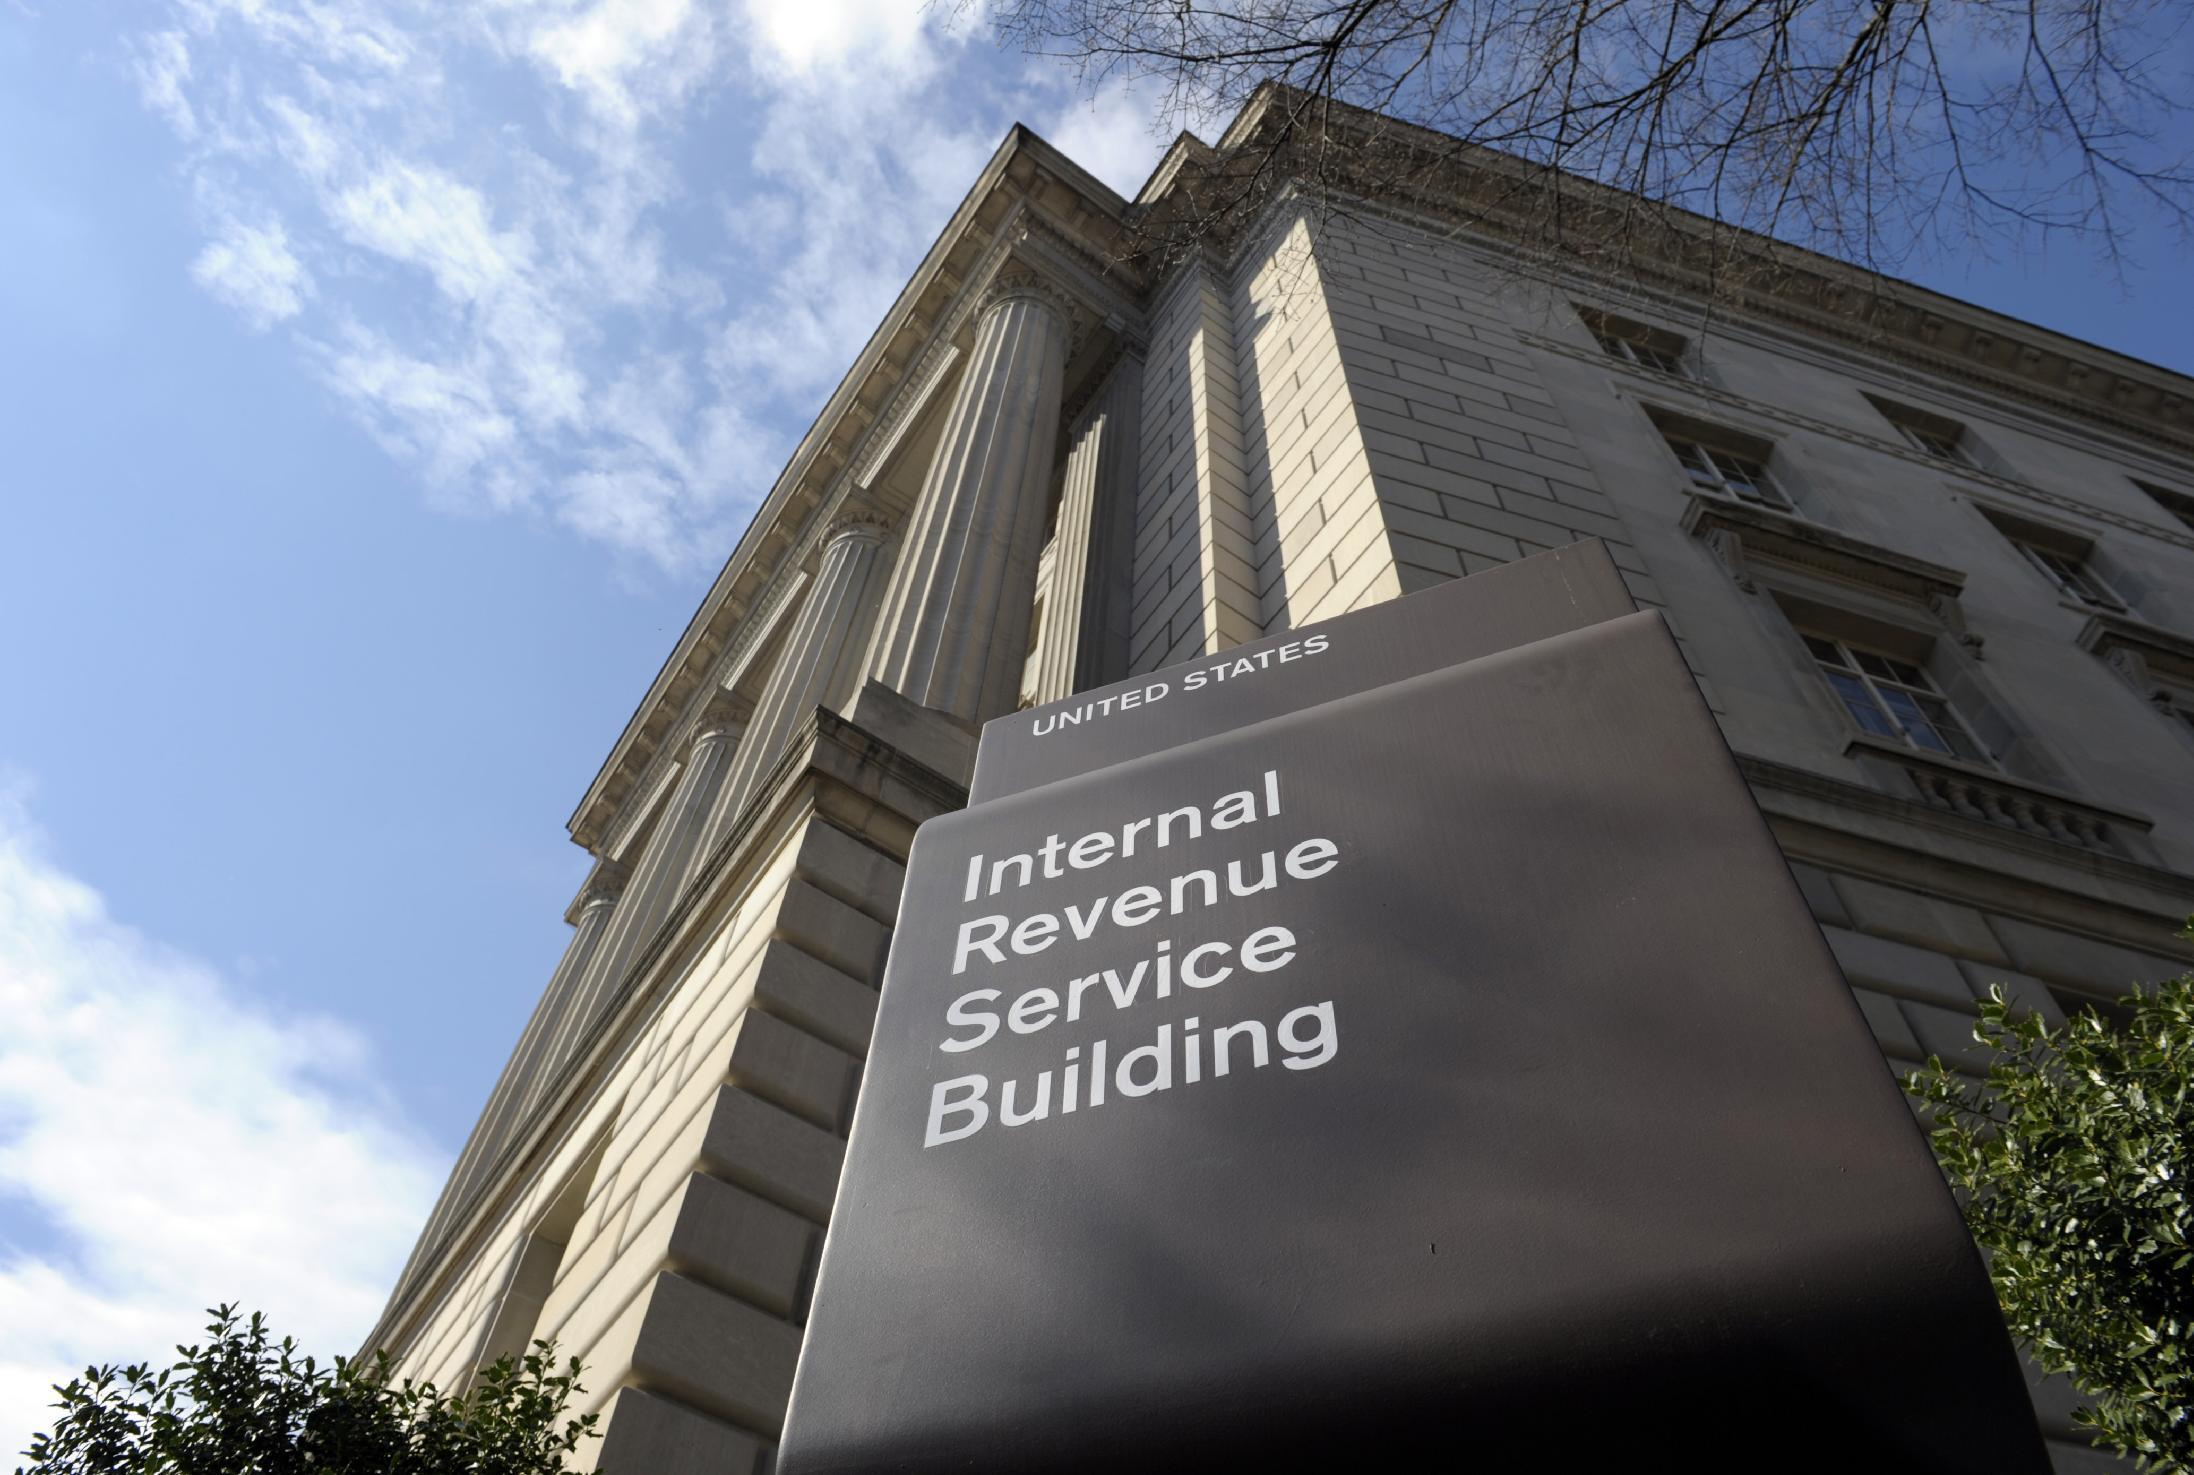 Report: IRS issues $5.6 billion in bogus education credits